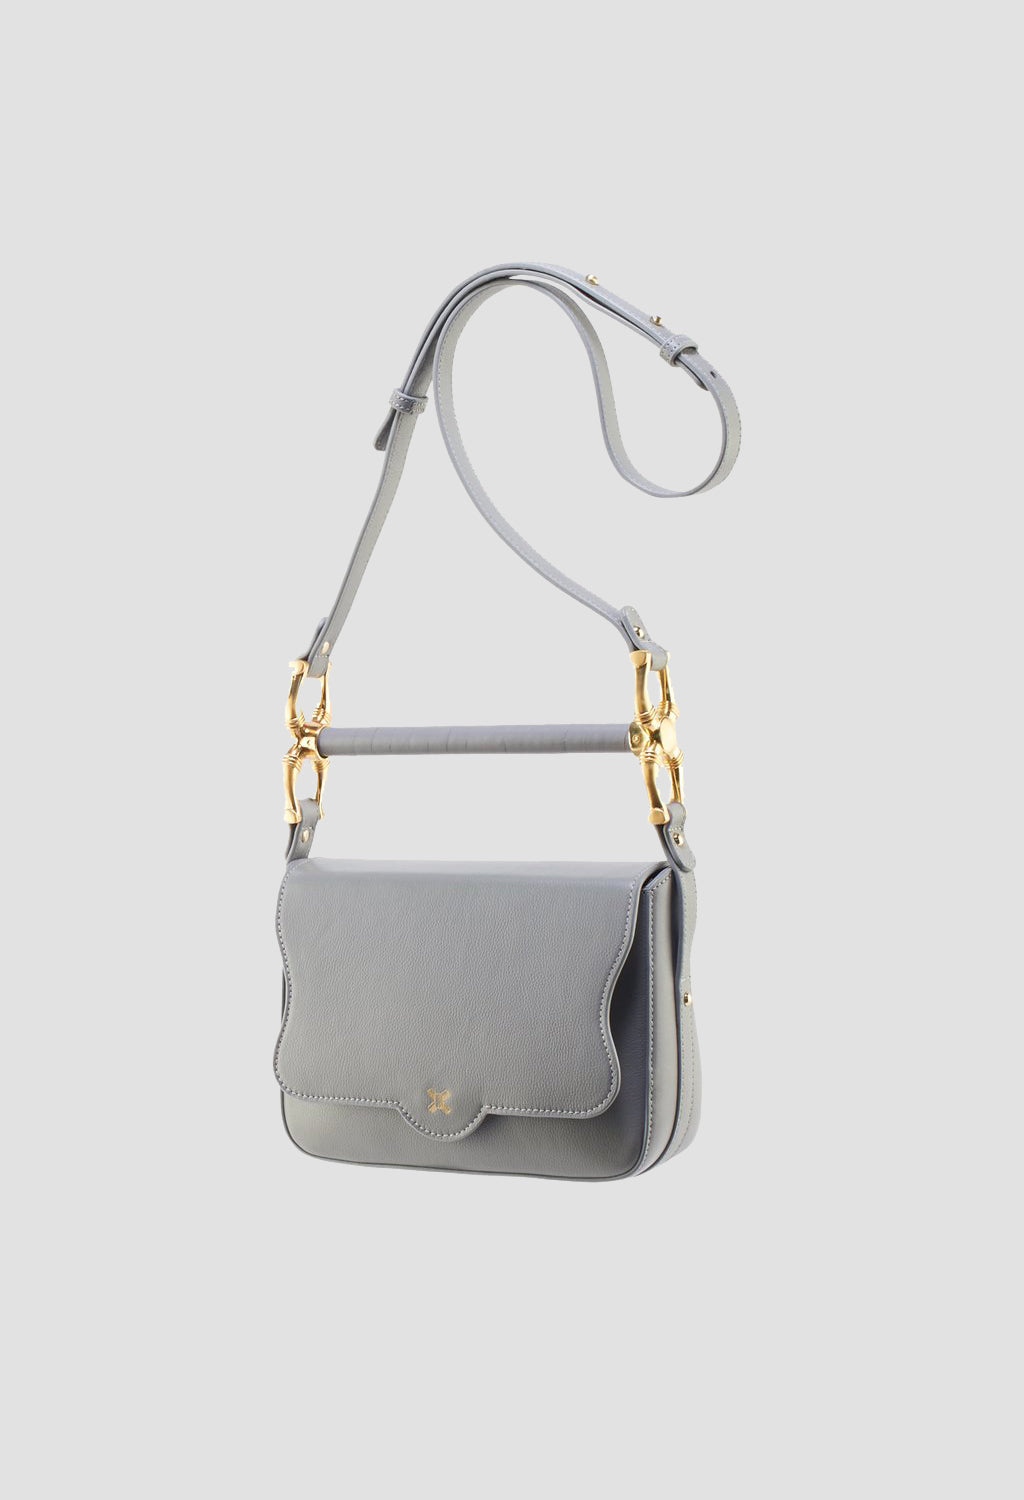 SANCIA - Rome Bag online at PAYA boutique